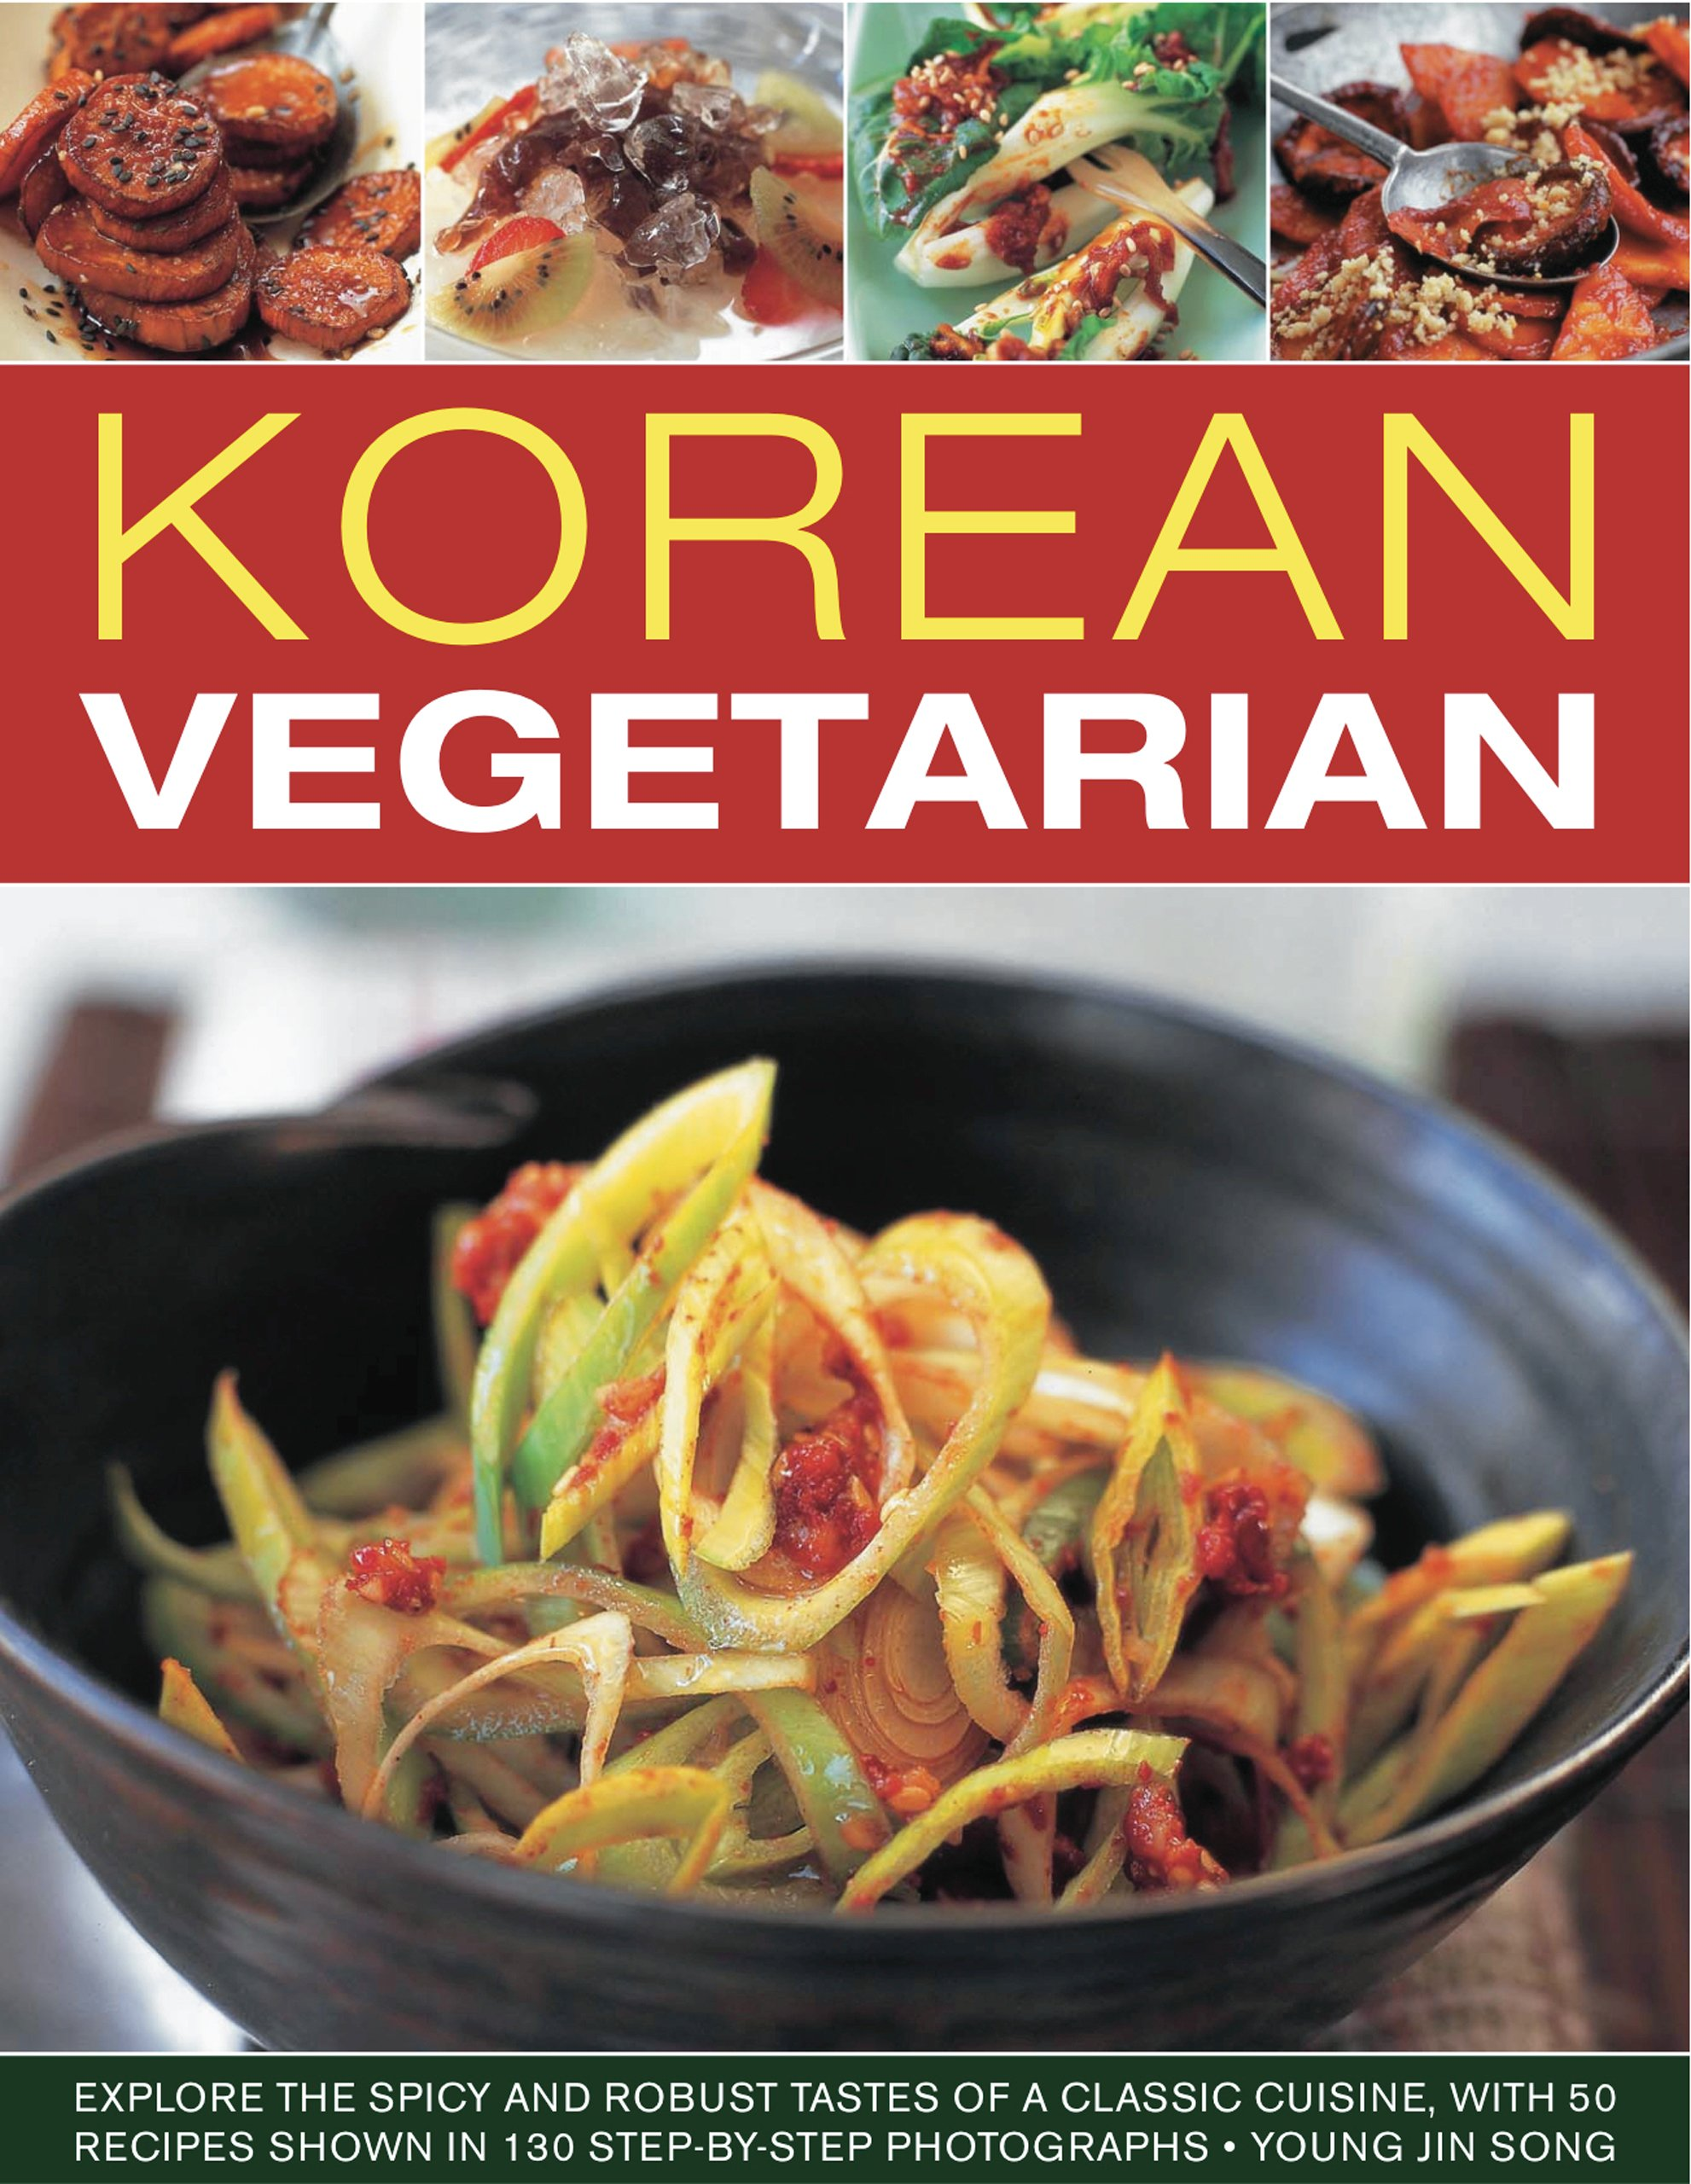 Amazon korean vegetarian explore the spicy and robust tastes amazon korean vegetarian explore the spicy and robust tastes of a classic cuisine with 50 recipes shown in 130 step by step photographs forumfinder Gallery